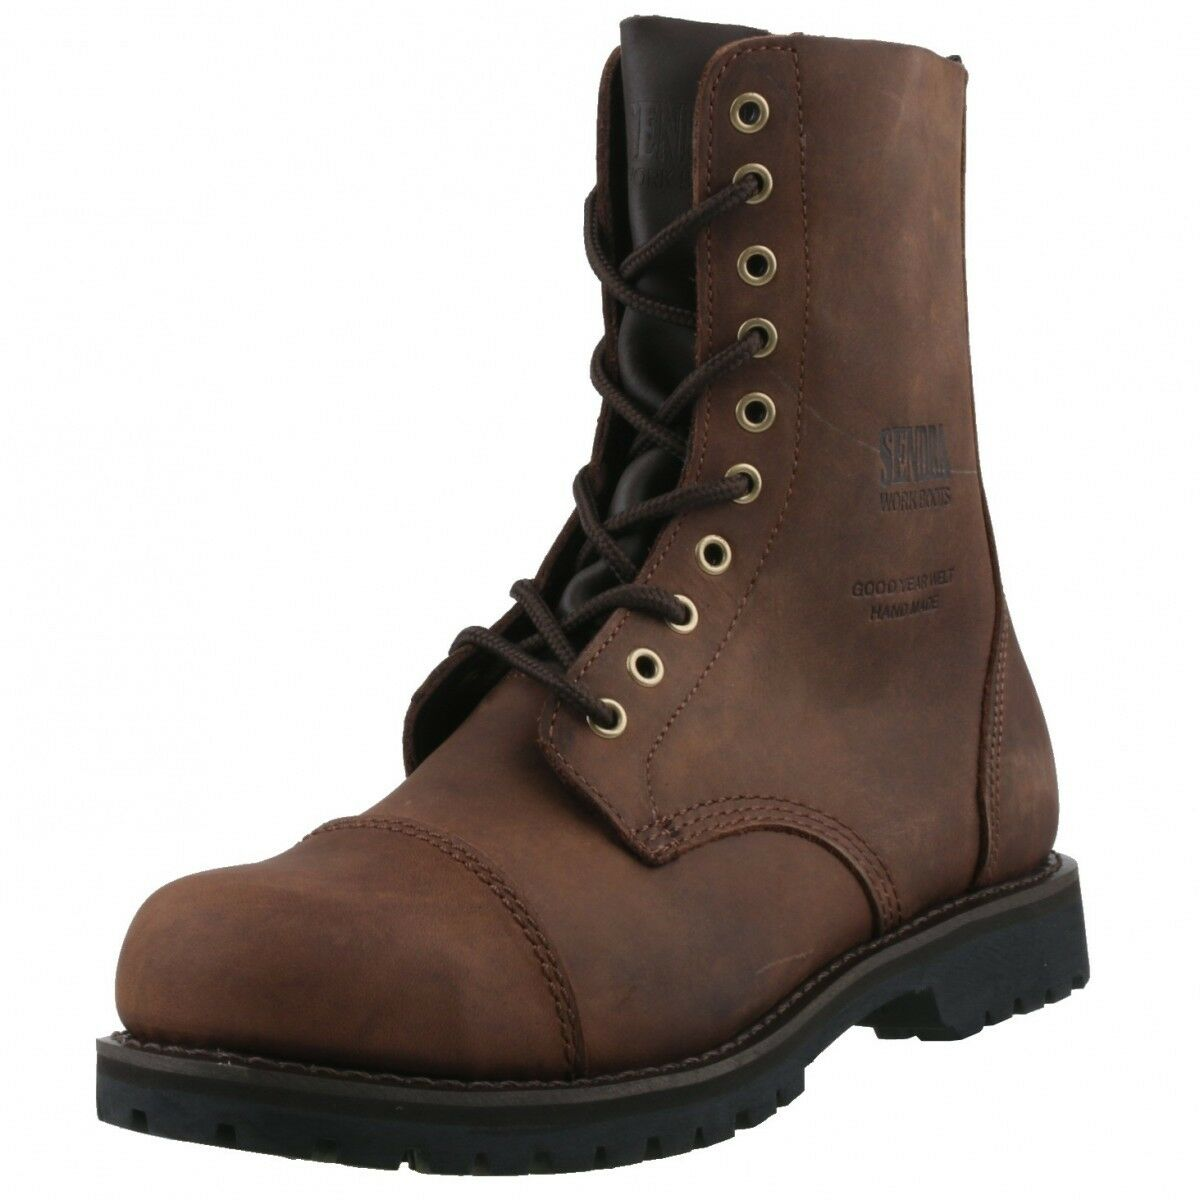 Nuevo Sendra engineerbotas worker combate 6478 marrón